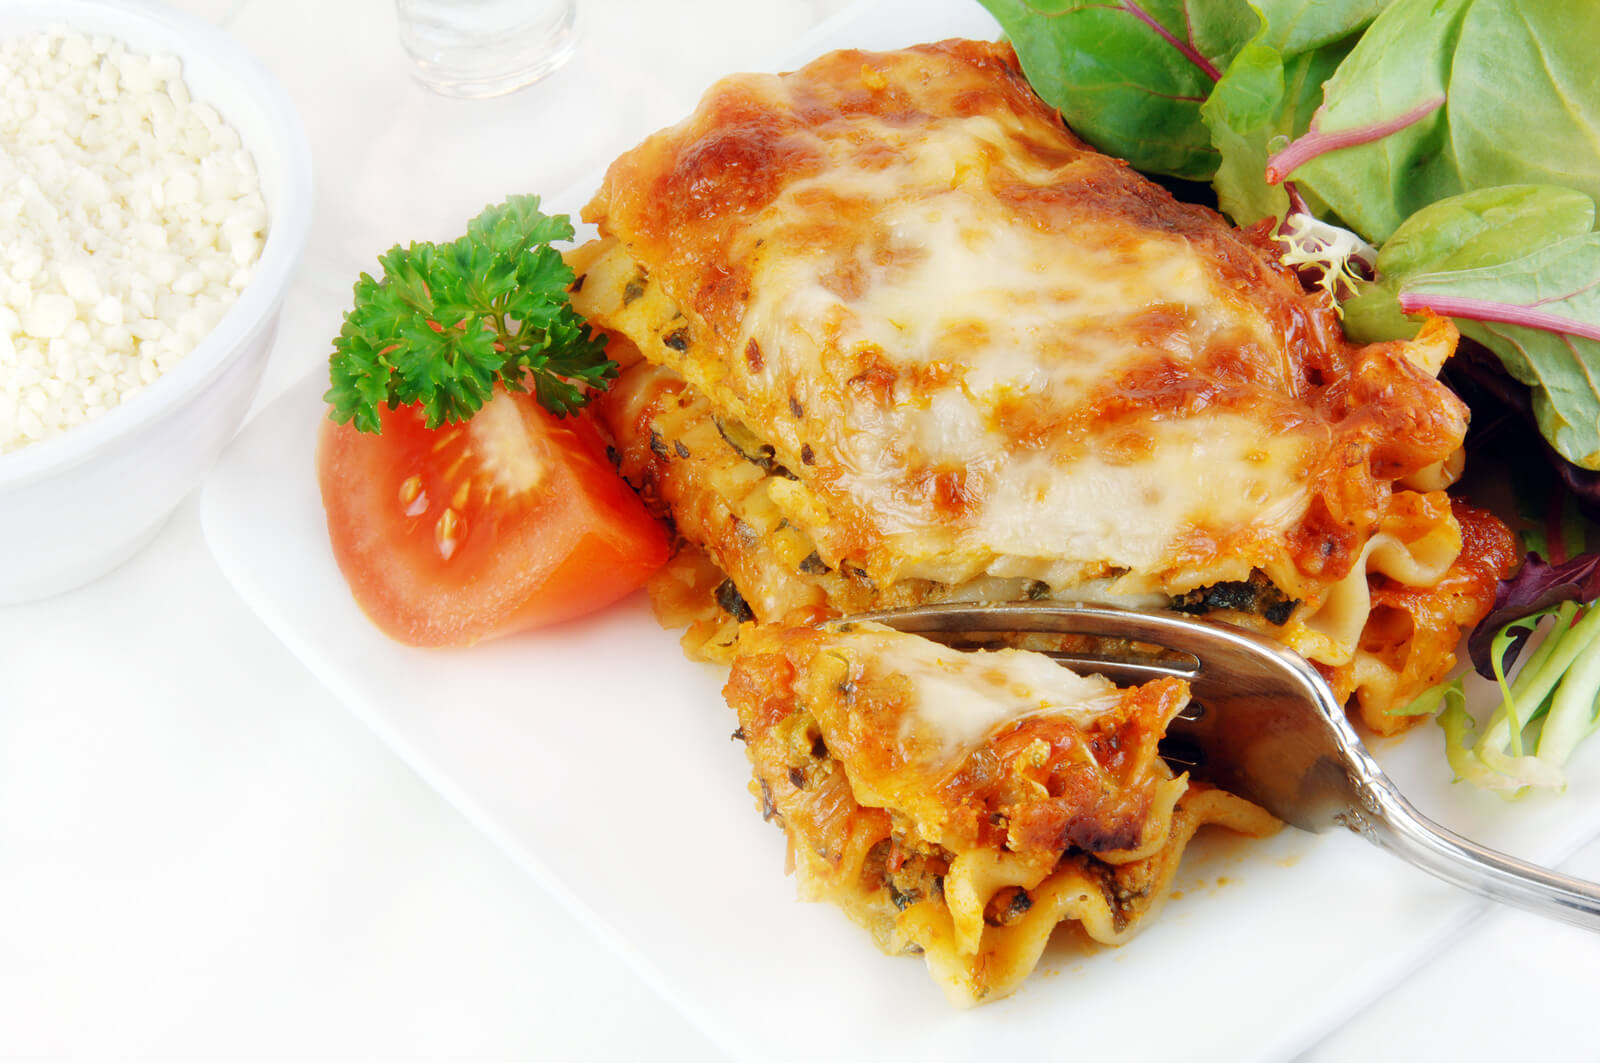 Lasagna With Salad